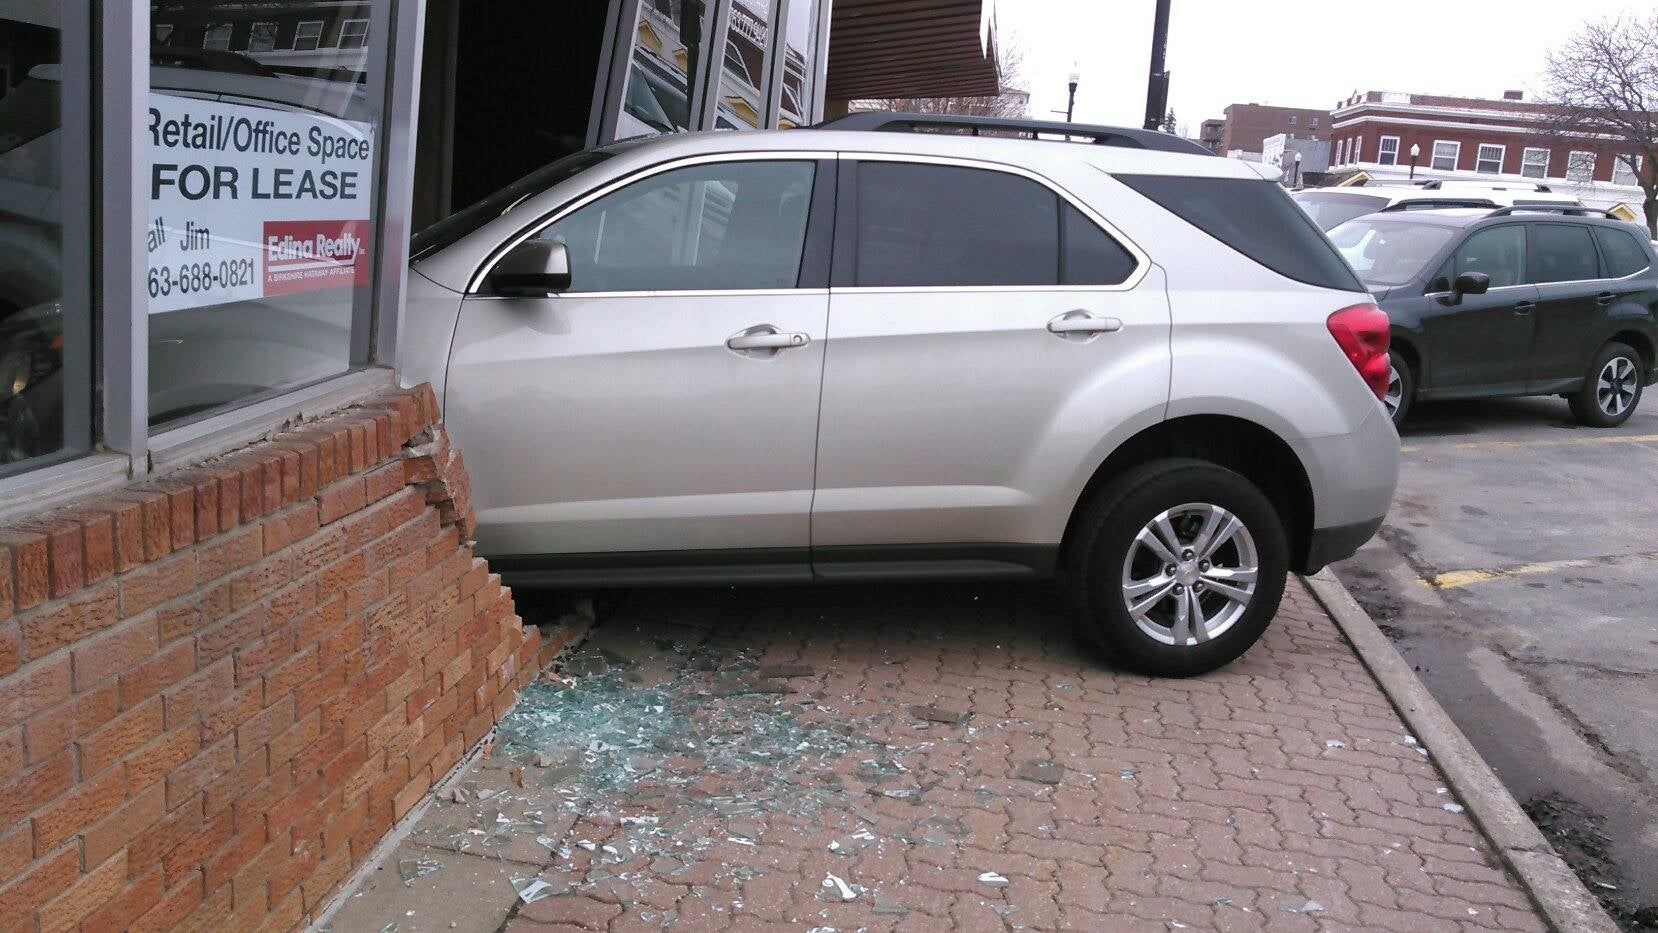 A car surrounded by shattered glass that has crashed through the front of a building.